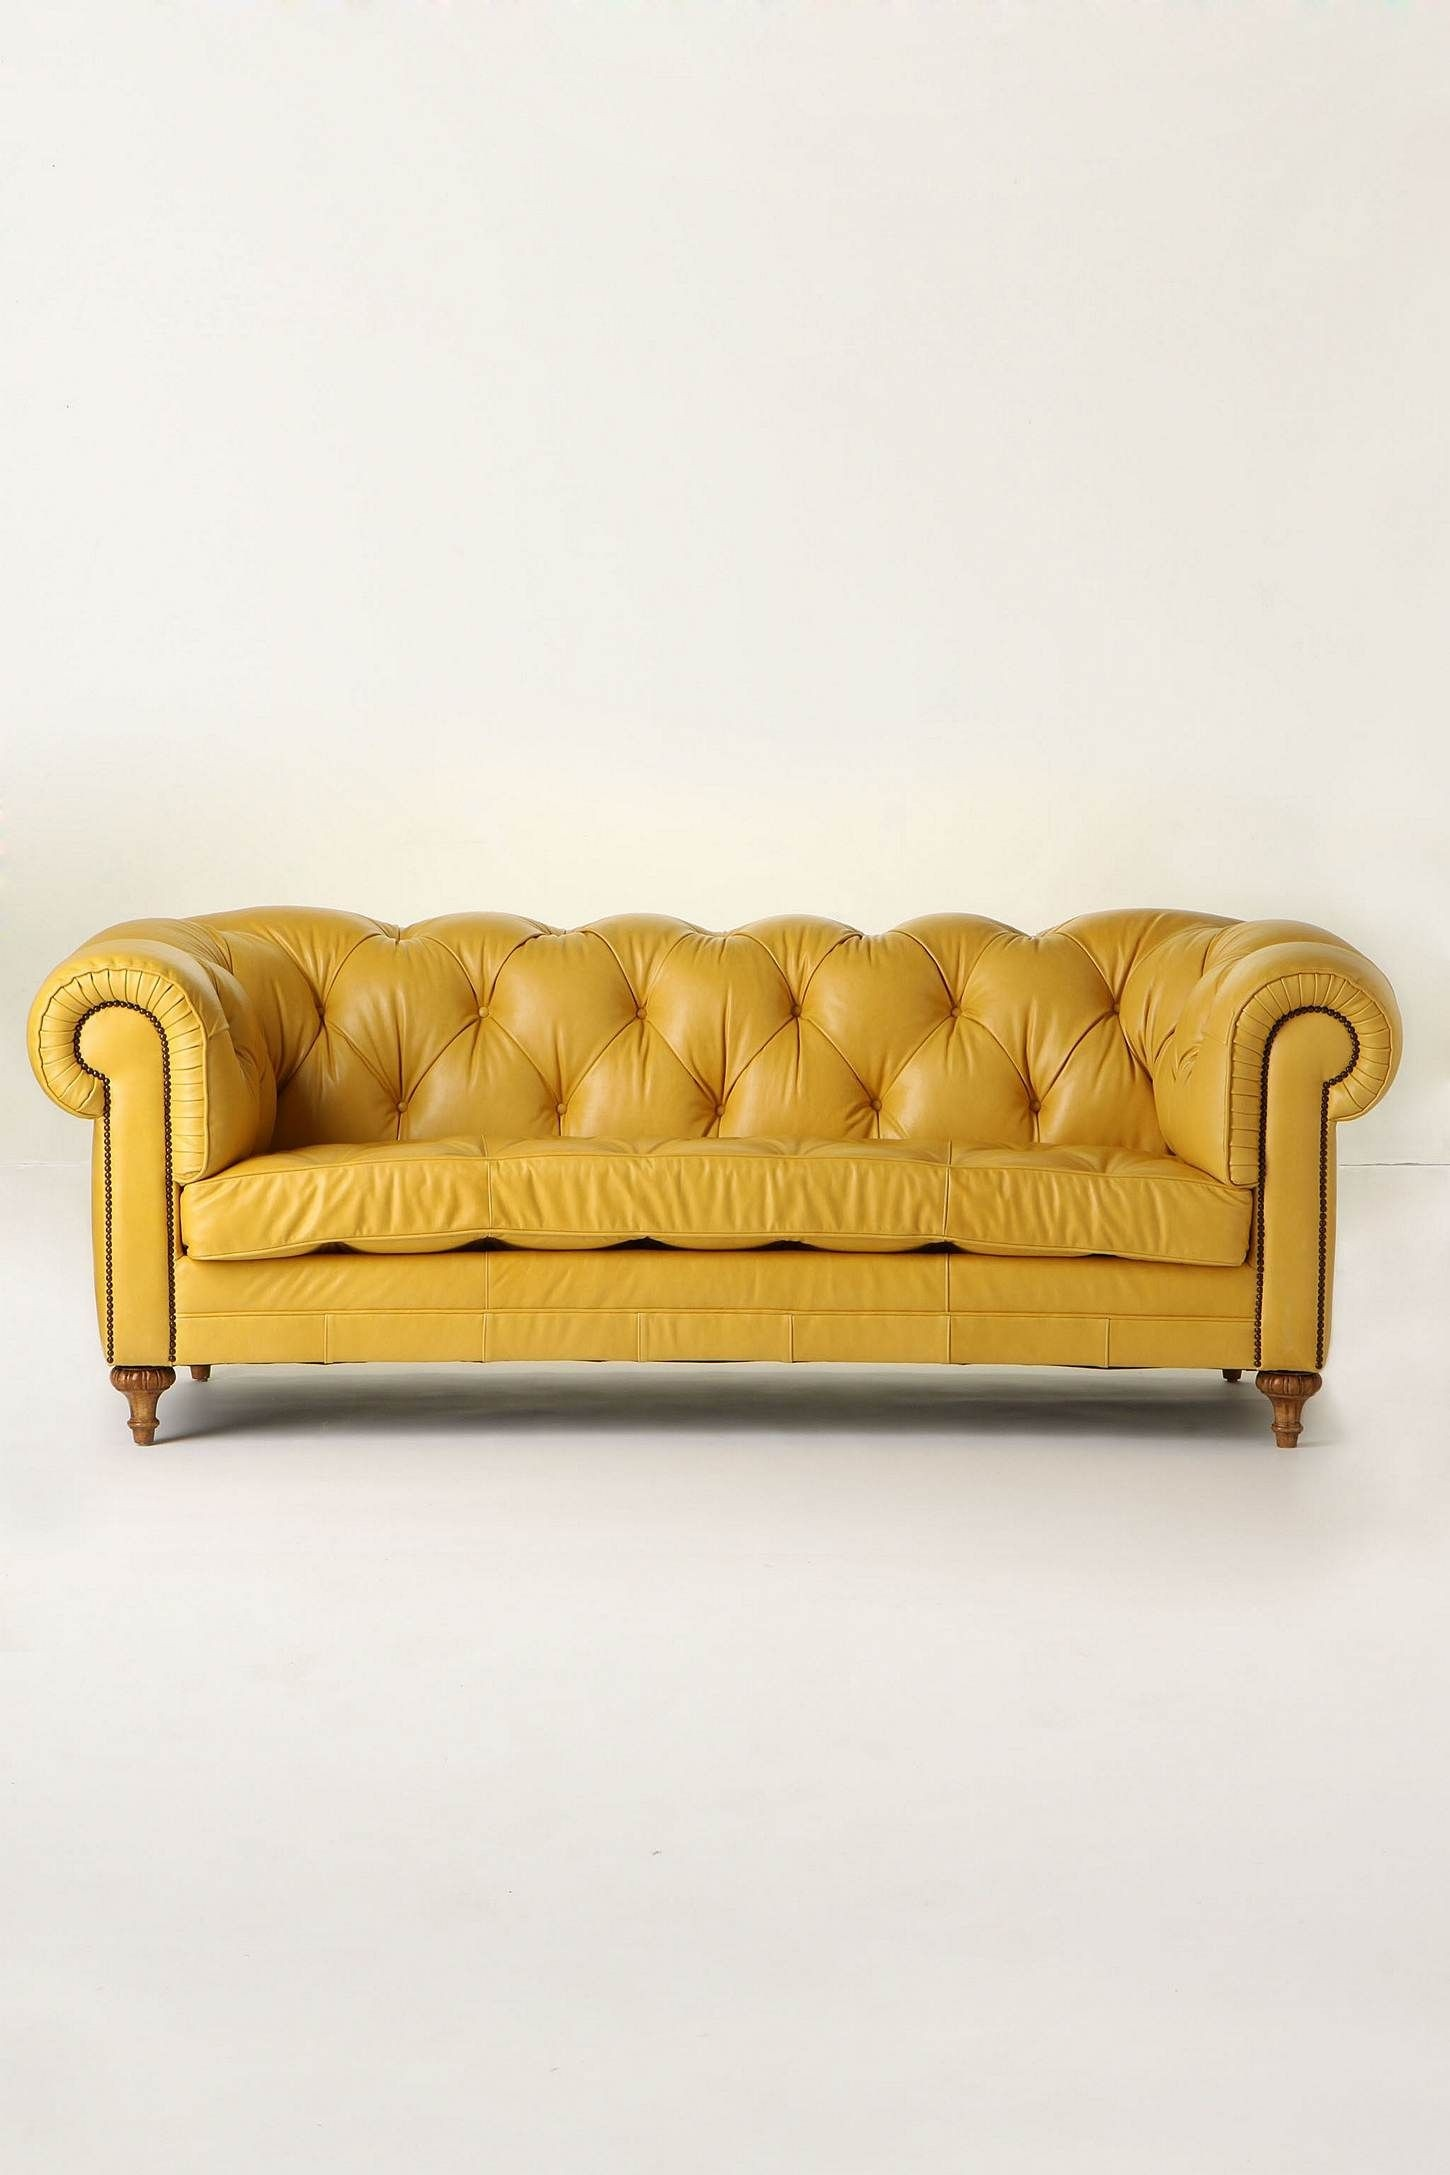 yellow tufted sofa foter rh foter com Small Tufted Sofa Tufted Sectional Sofa